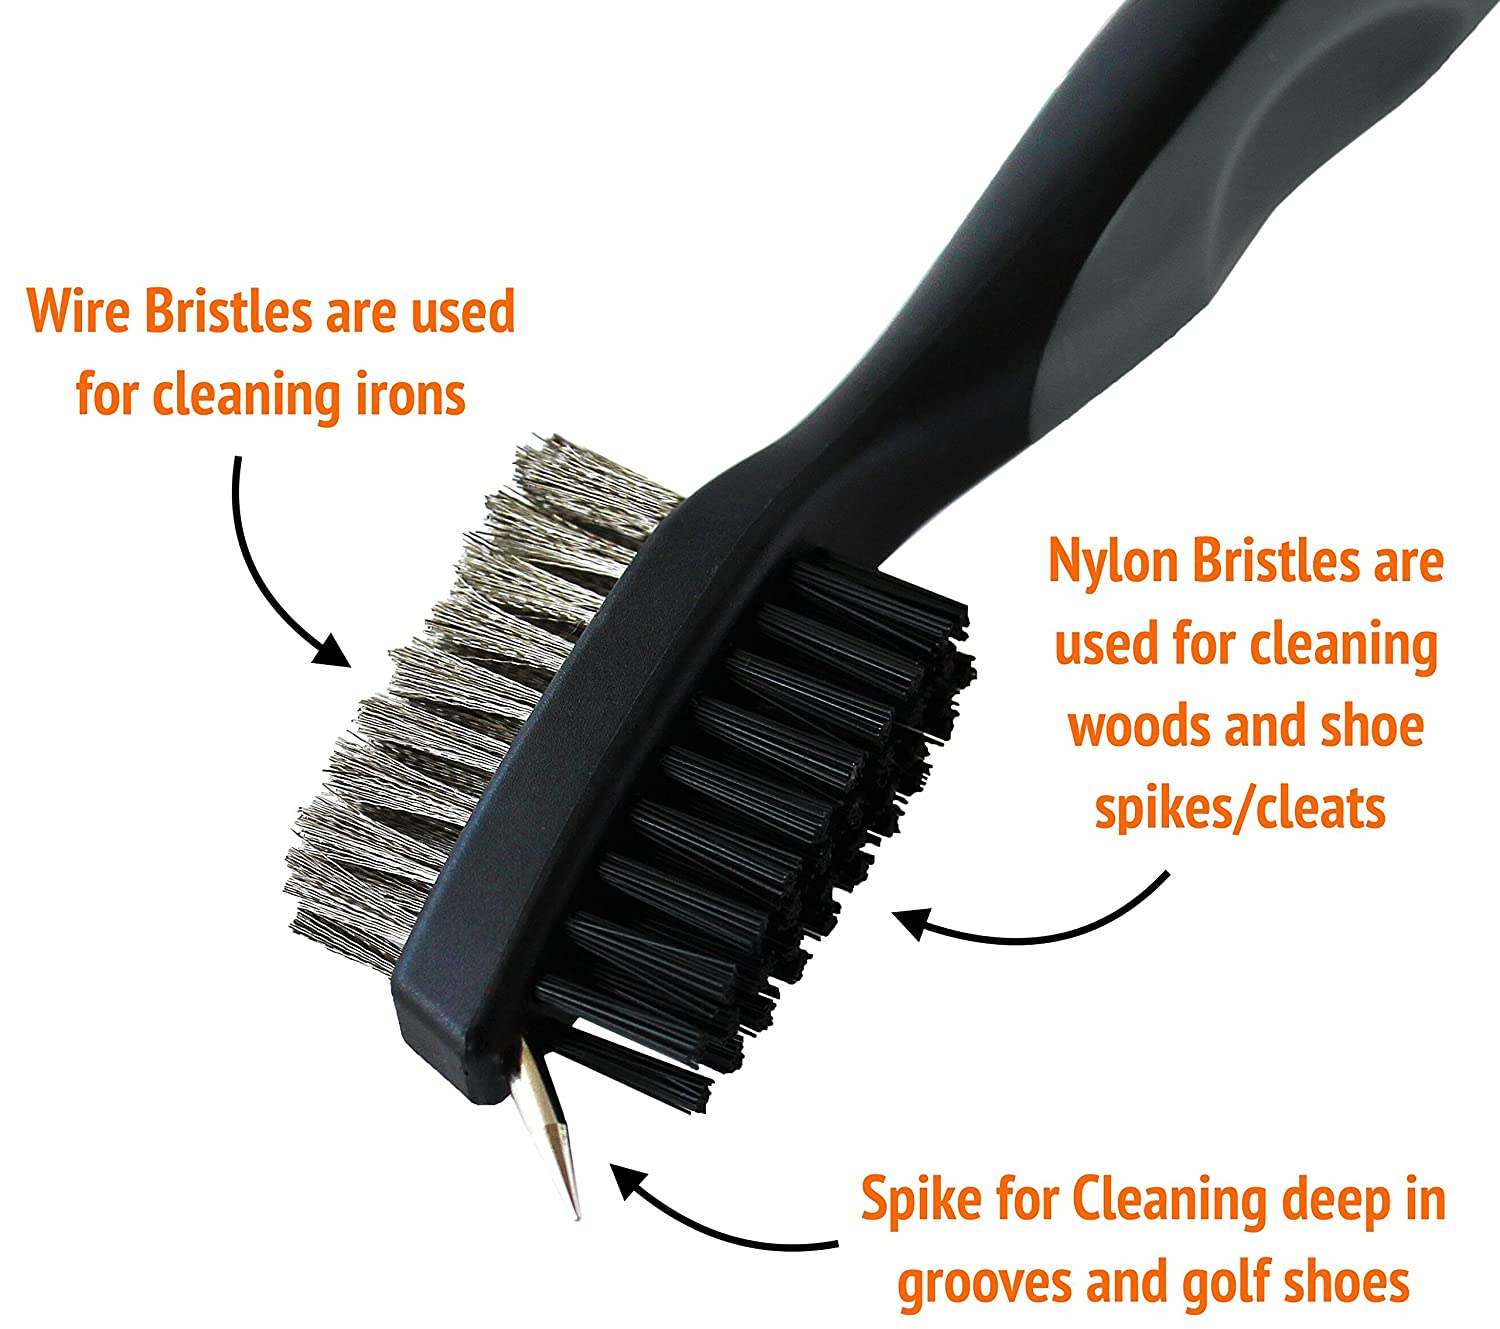 Voplop Golf Brush and Club Groove Cleaner - Easily Attaches to Golf Bag -  Deep Clean Iron Grooves - Cleaning Club Face - Bag Clip & Retractable